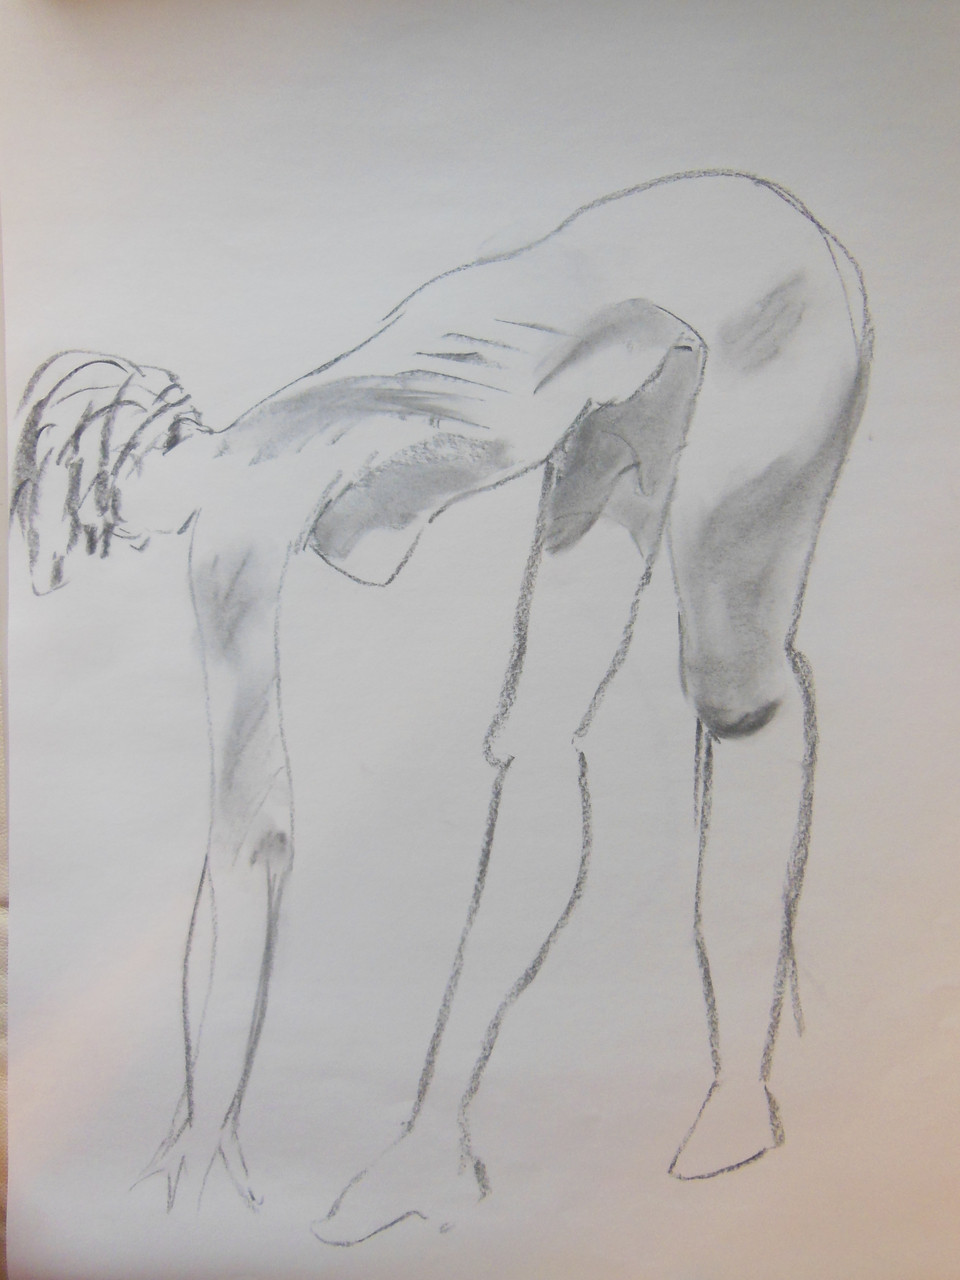 Unfinished Study. Pencil on paper # 4